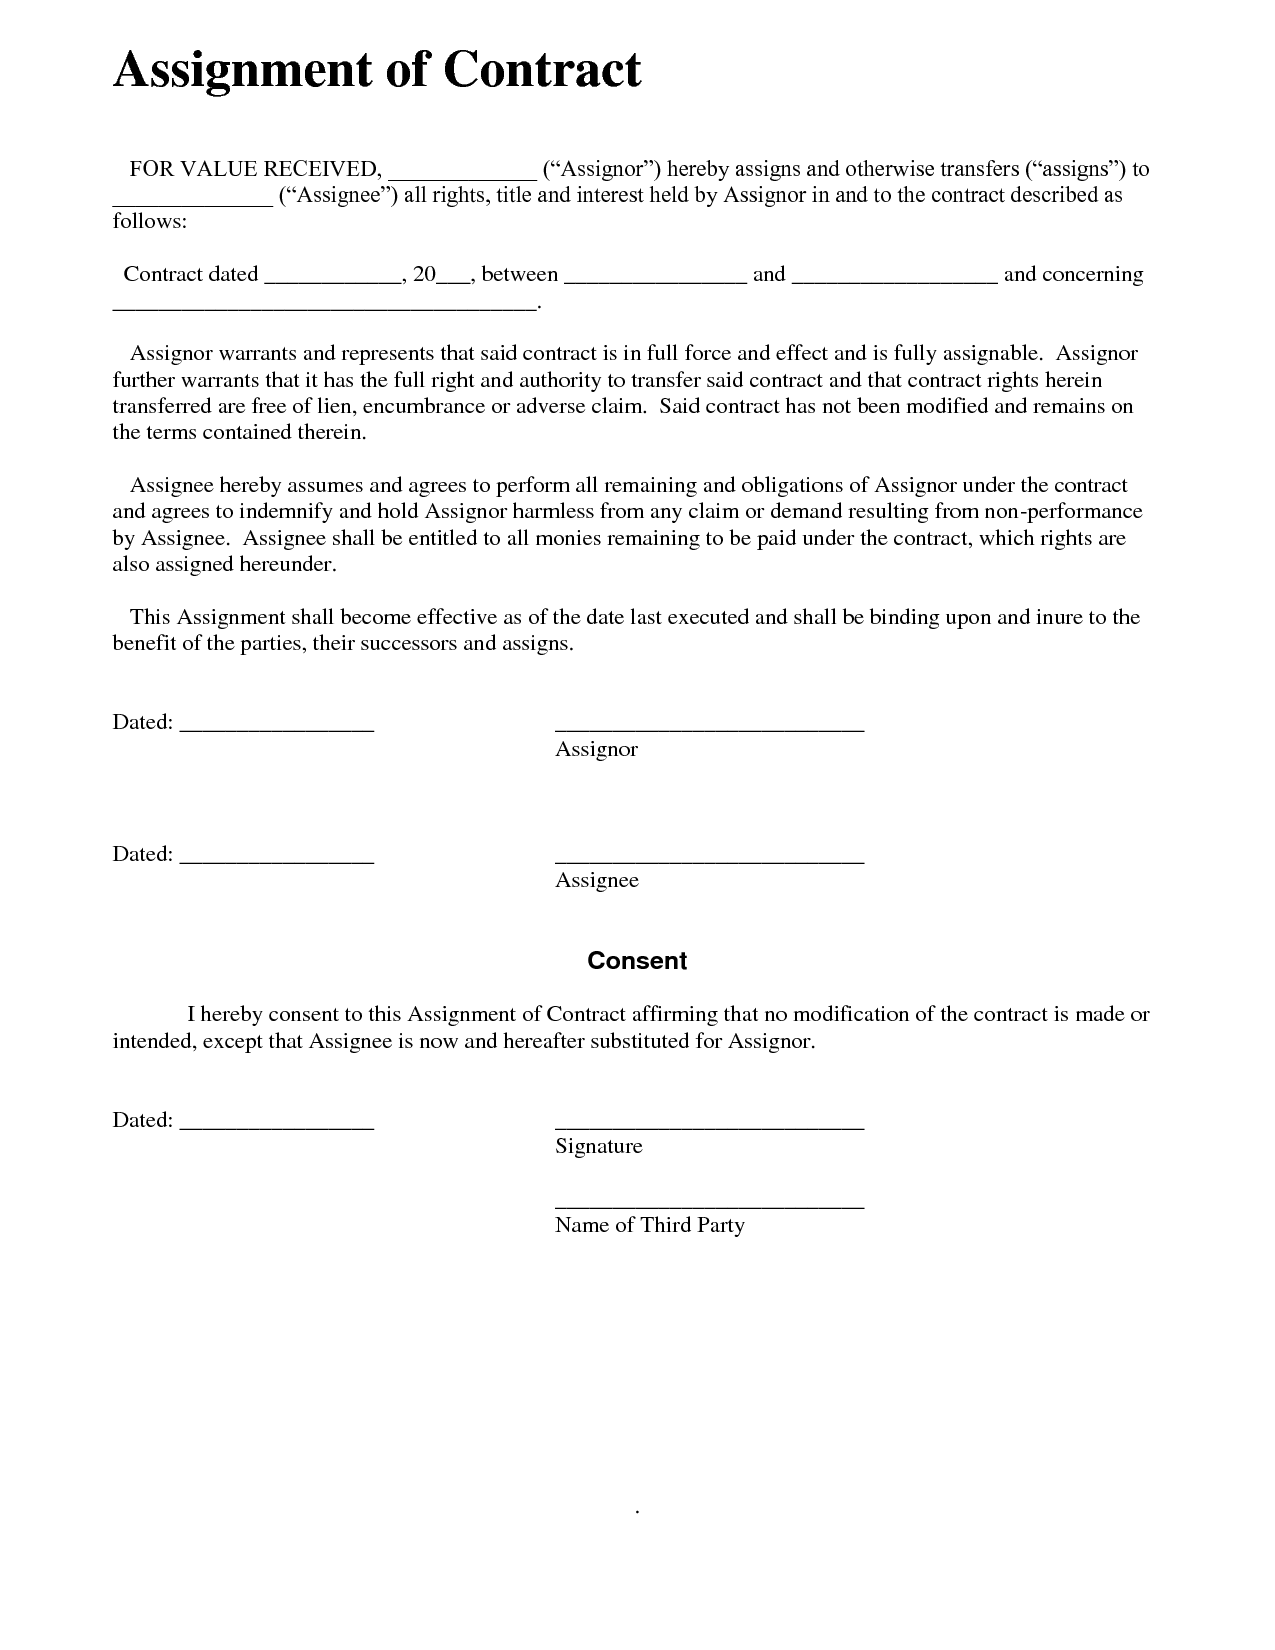 Assignment Of Contractual Rights – Assignment Agreement Template